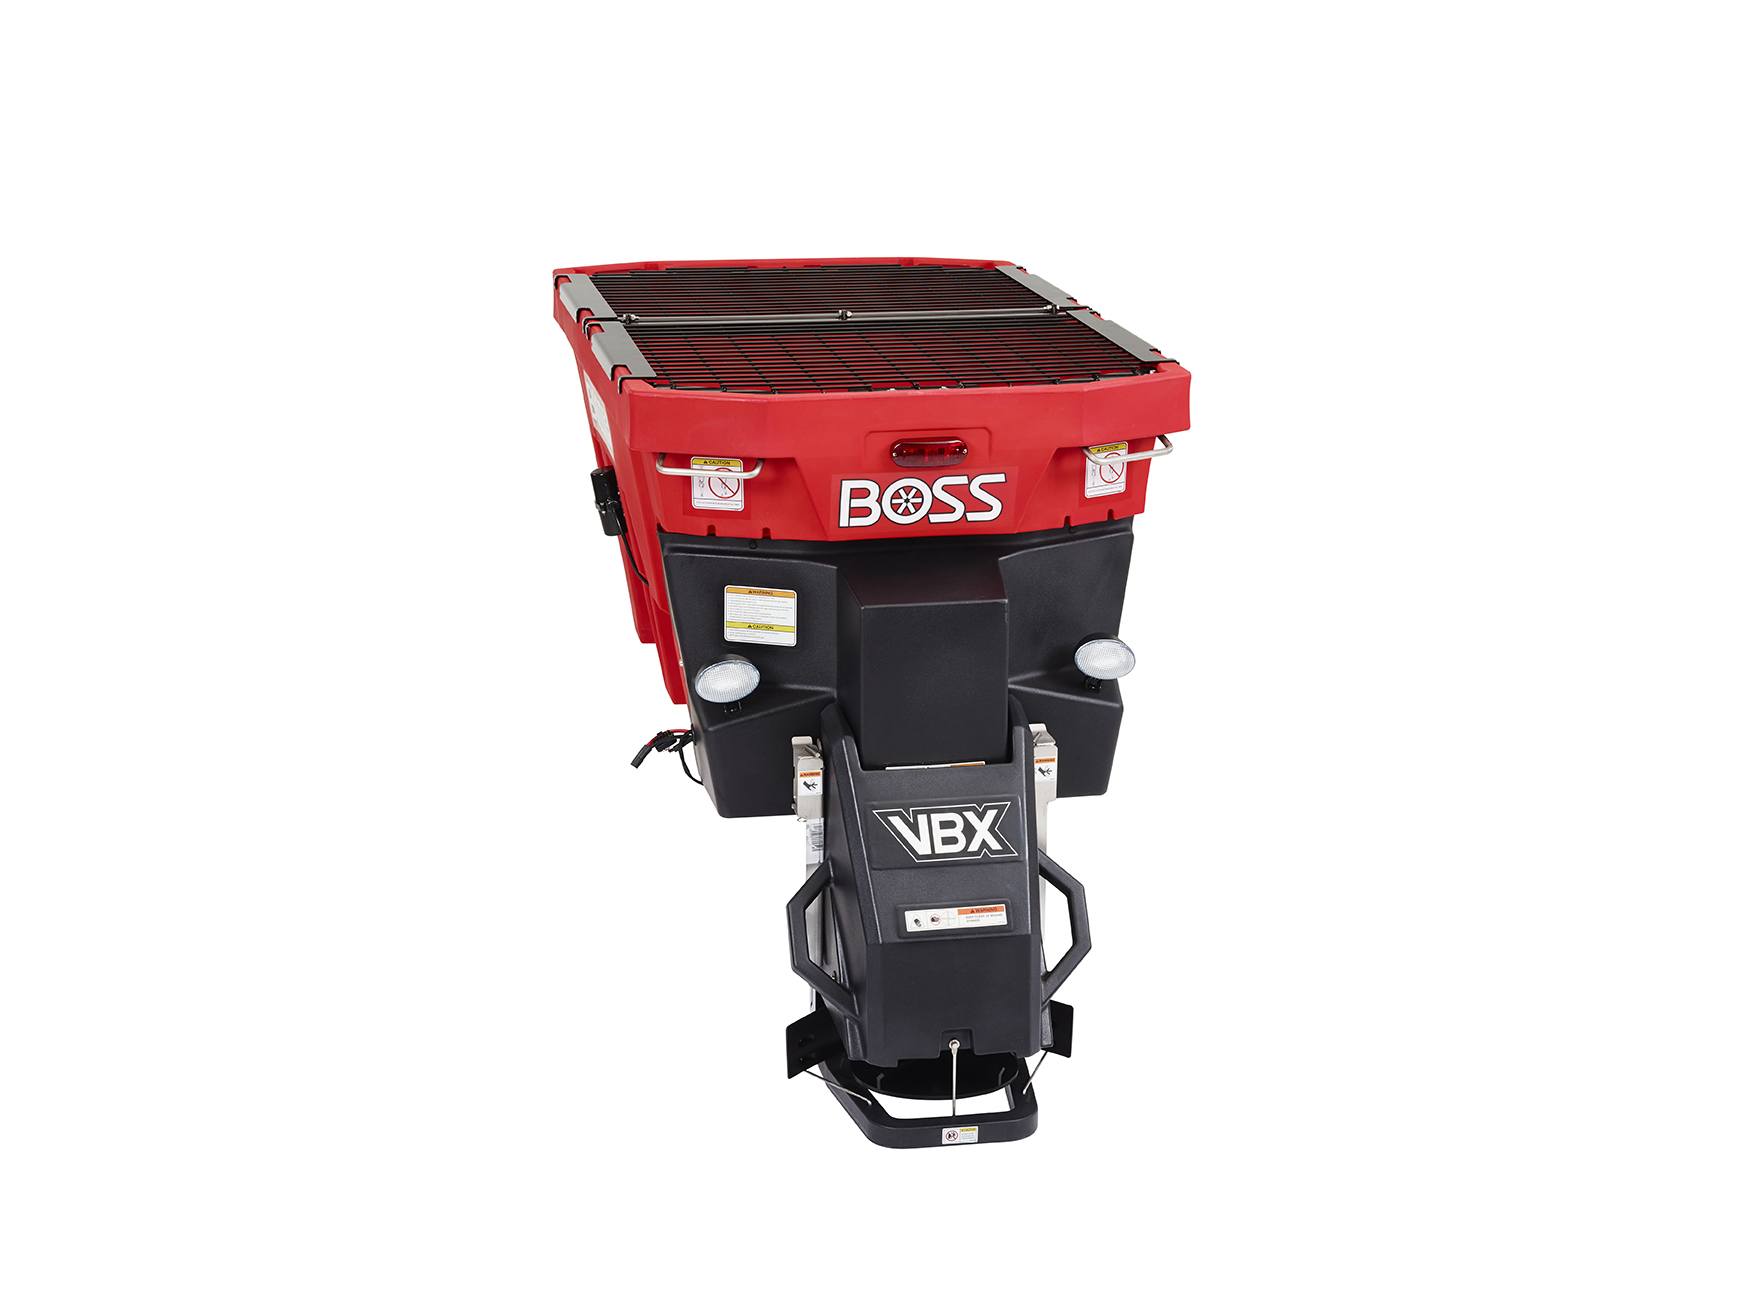 Boss Snowplow Vbx Spreaders Sander Wiring Diagram Features